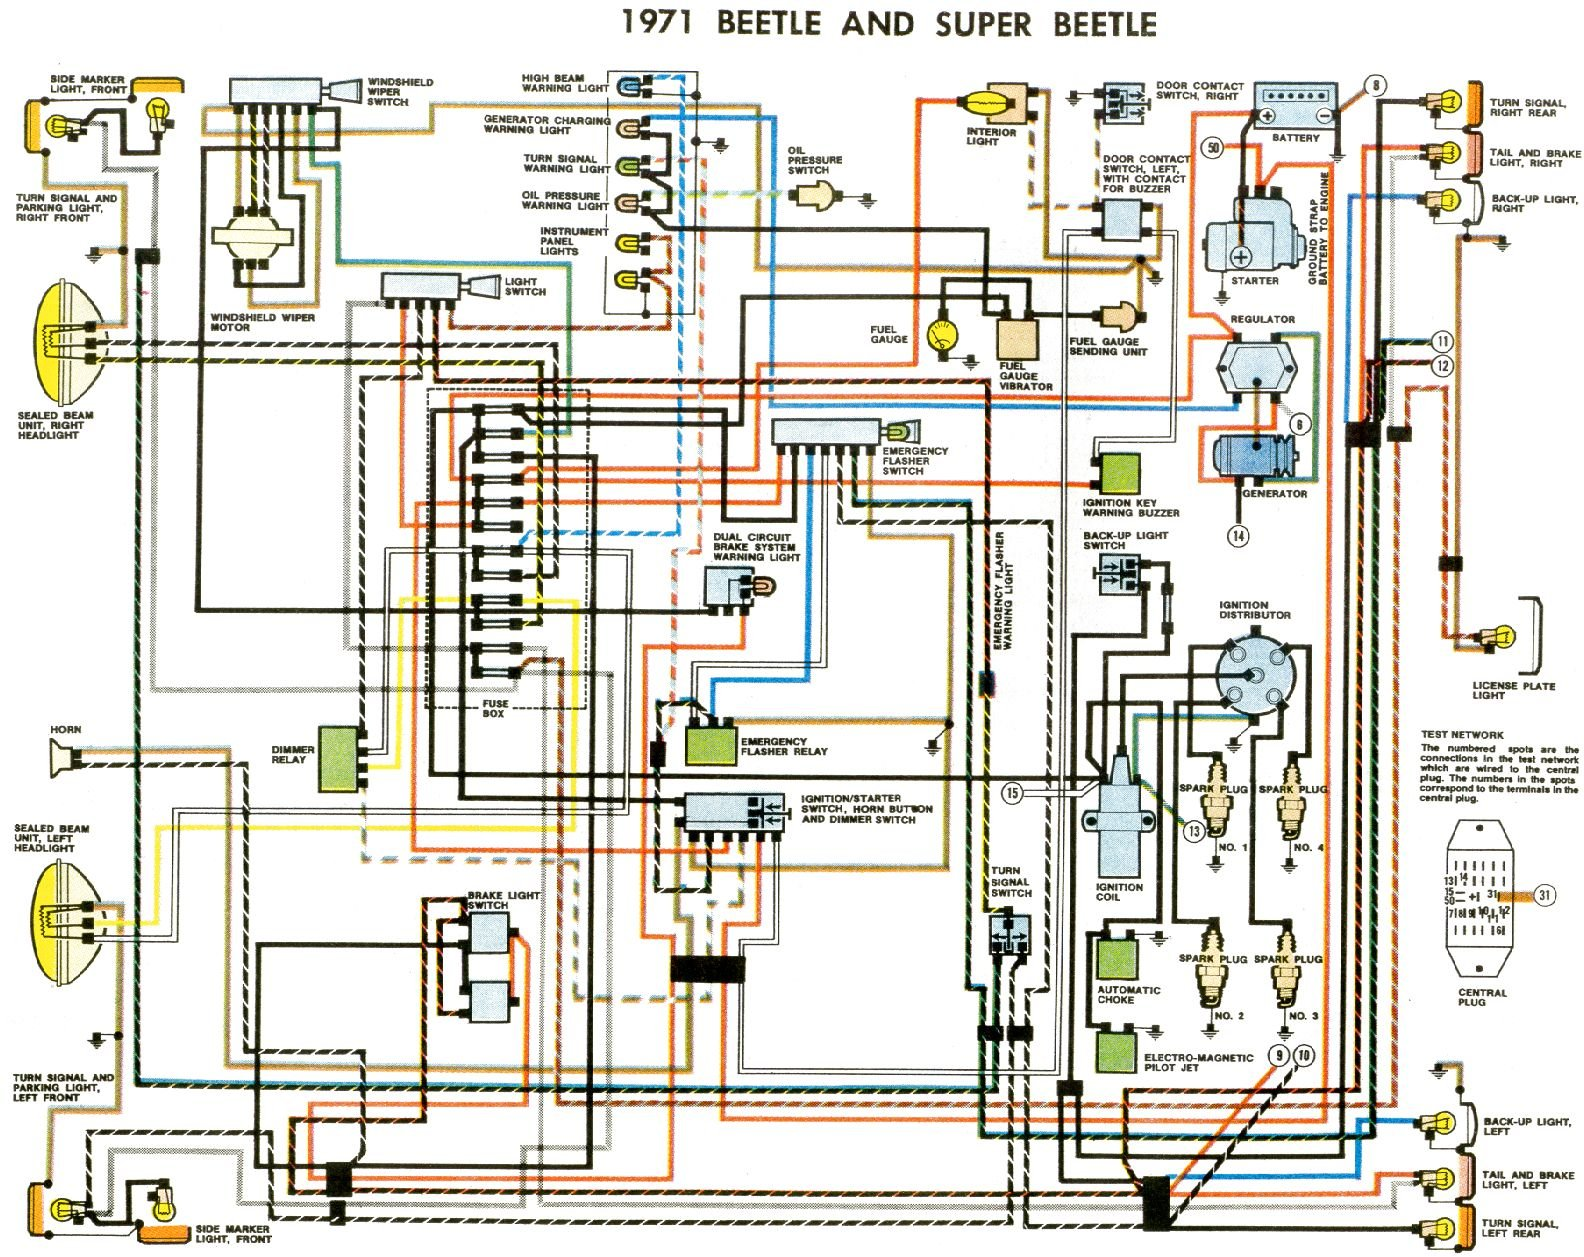 bug_71 1971 beetle wiring diagram (usa) thegoldenbug com 1974 vw beetle wiring diagram at virtualis.co